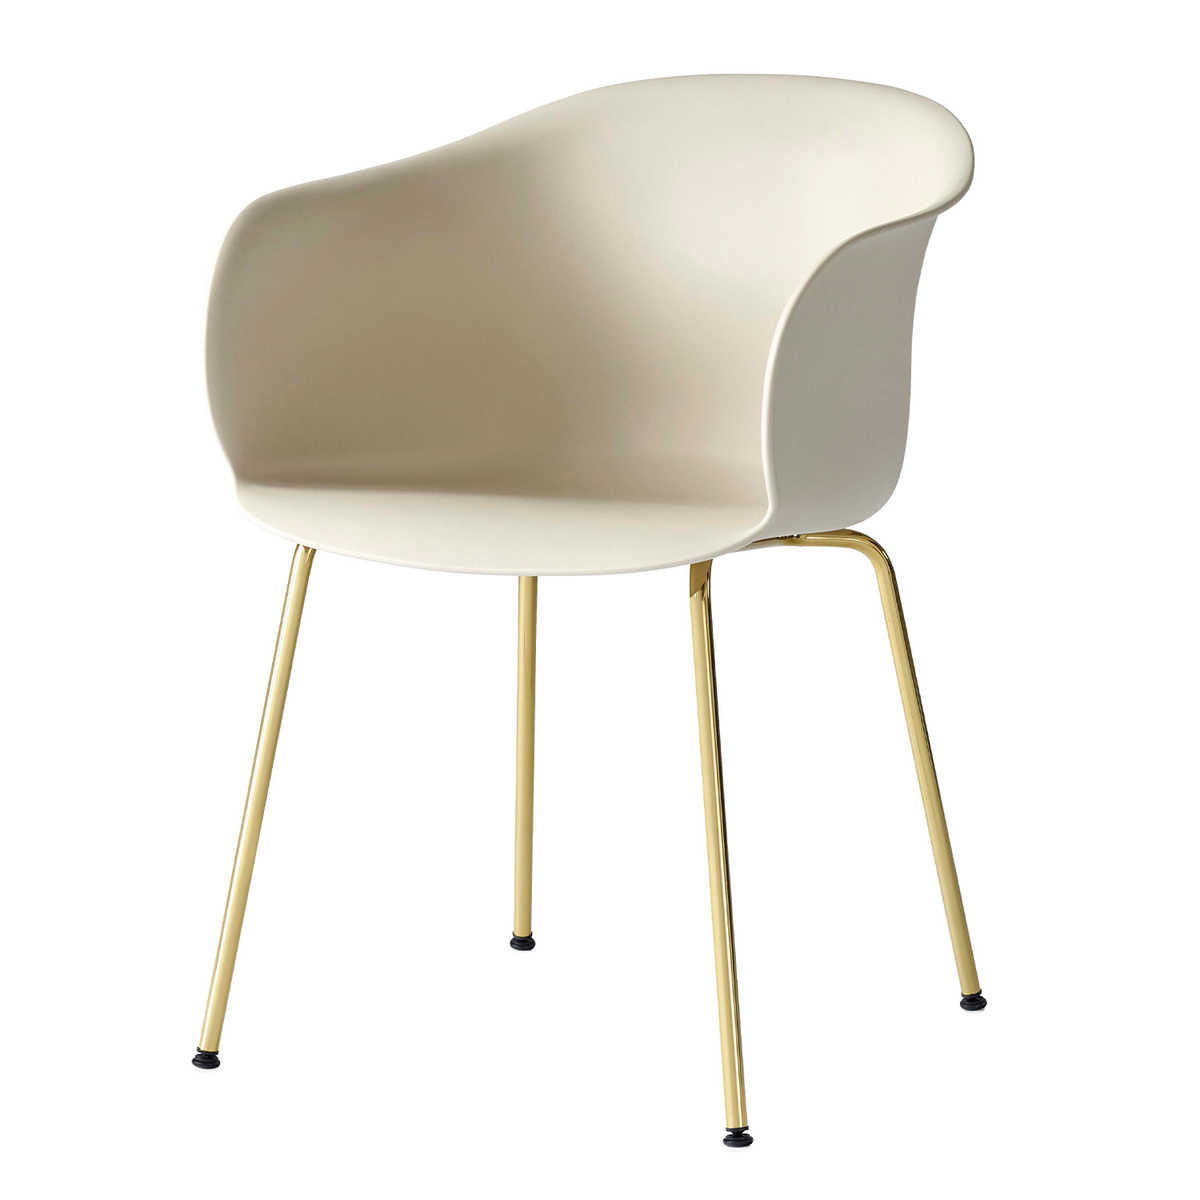 &Tradition Elefy JH28 chair, soft beige - brass from &Tradition